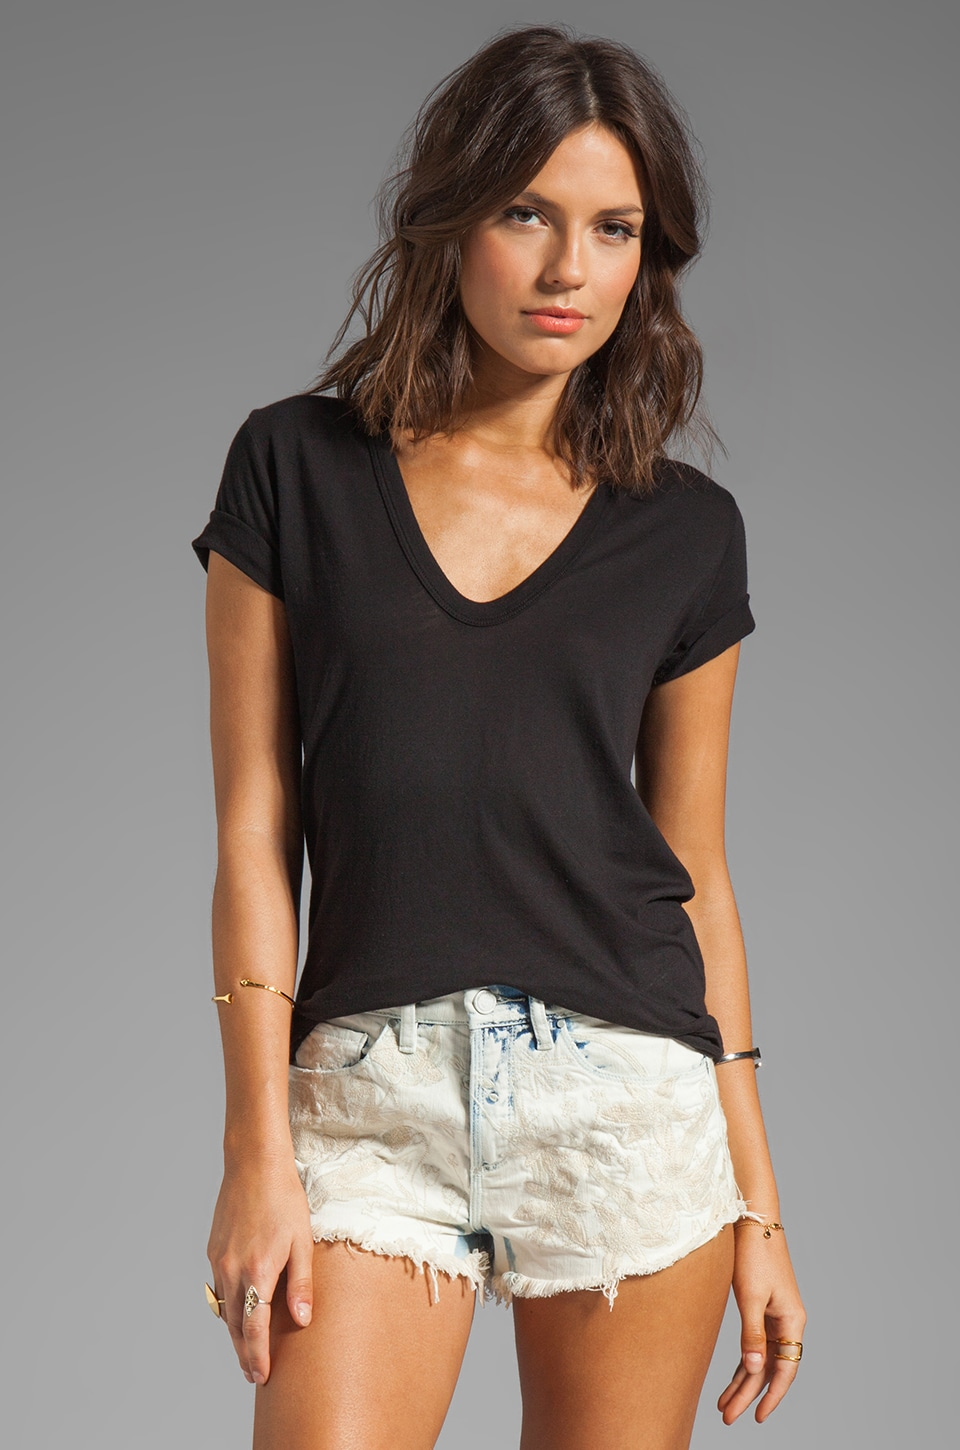 Enza Costa Tissue Jersey Loose Short Sleeve in Black